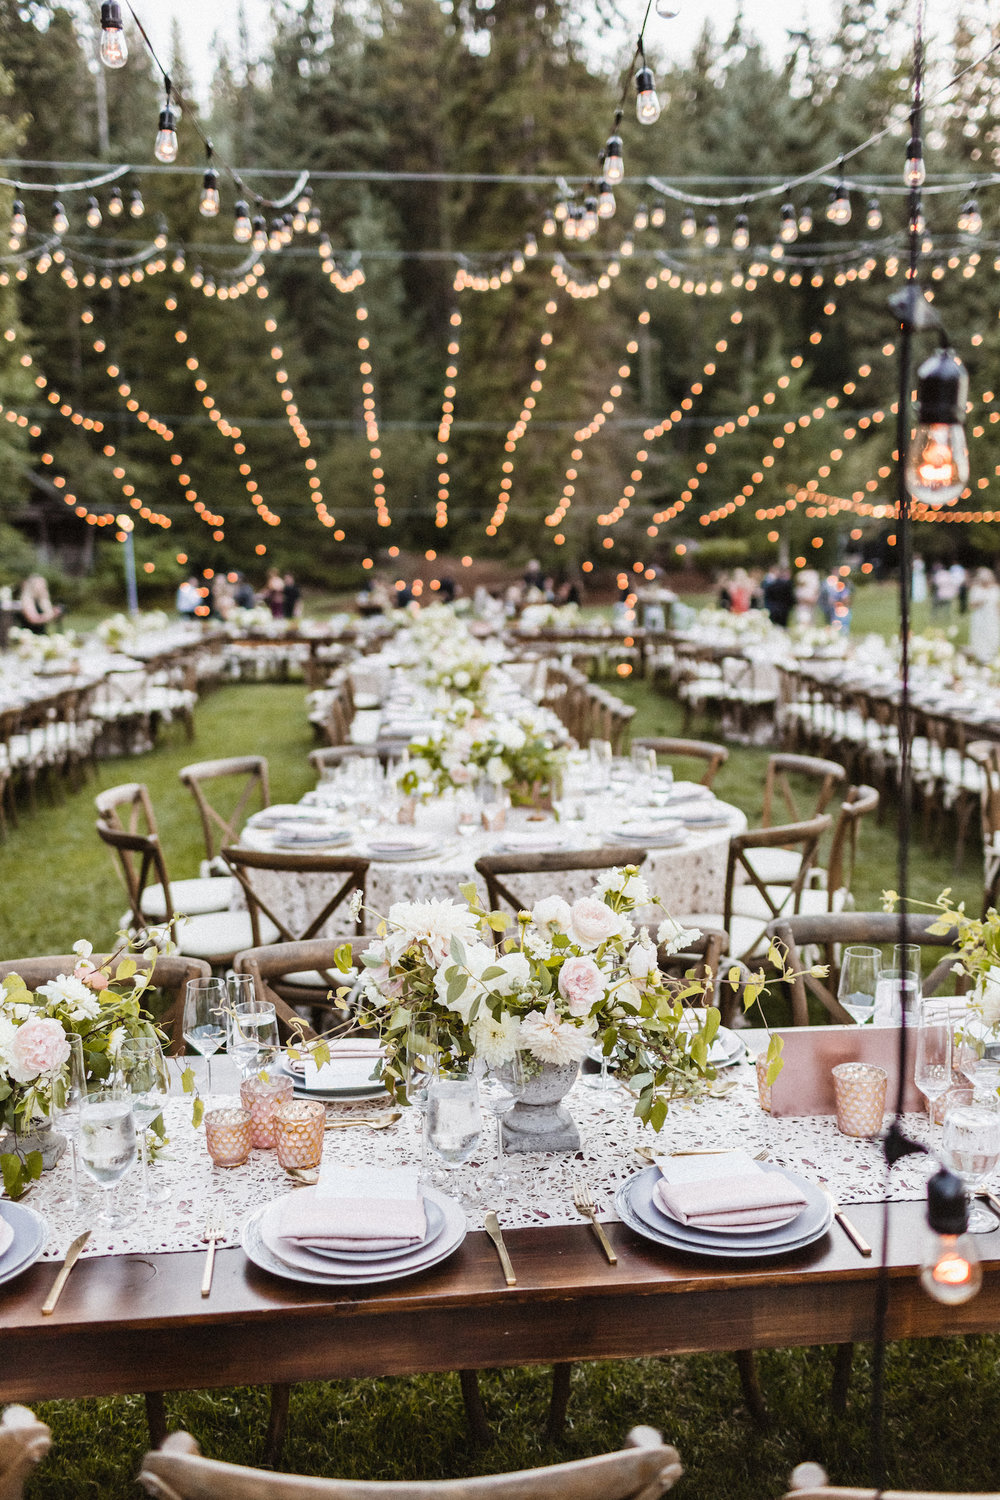 Julianne Hough and Brooks Laich Wedding - Wild Bloom Floral - Sarah Falugo Photography - Simply Troy Event Design 46.jpeg